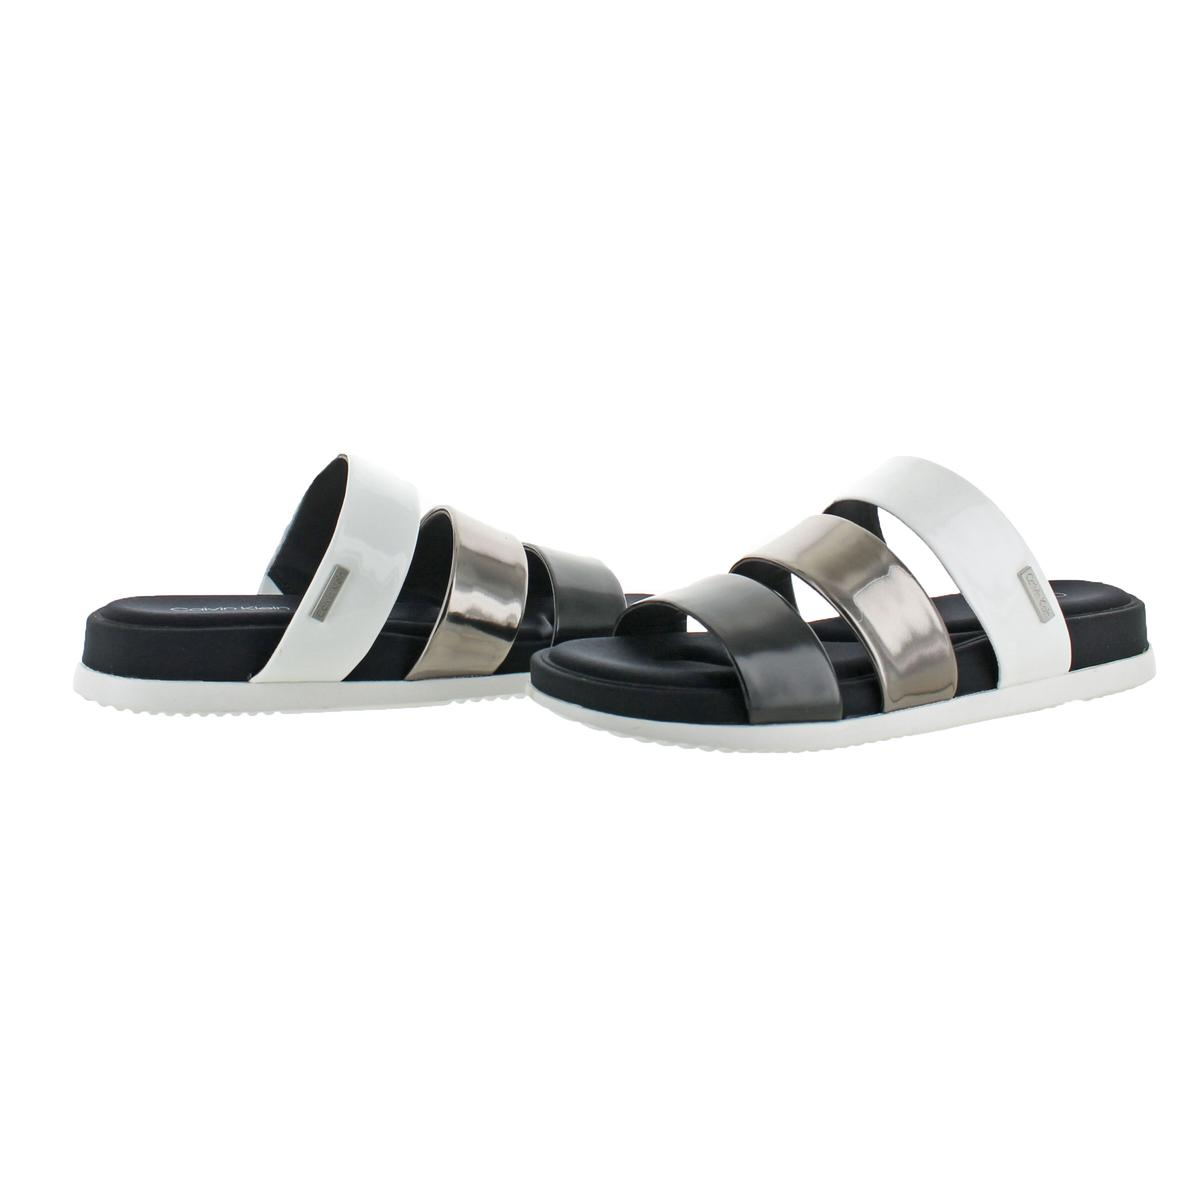 Calvin-Klein-Womens-Dalana-Strappy-Memory-Foam-Slide-Sandals-Shoes-BHFO-5266 thumbnail 5